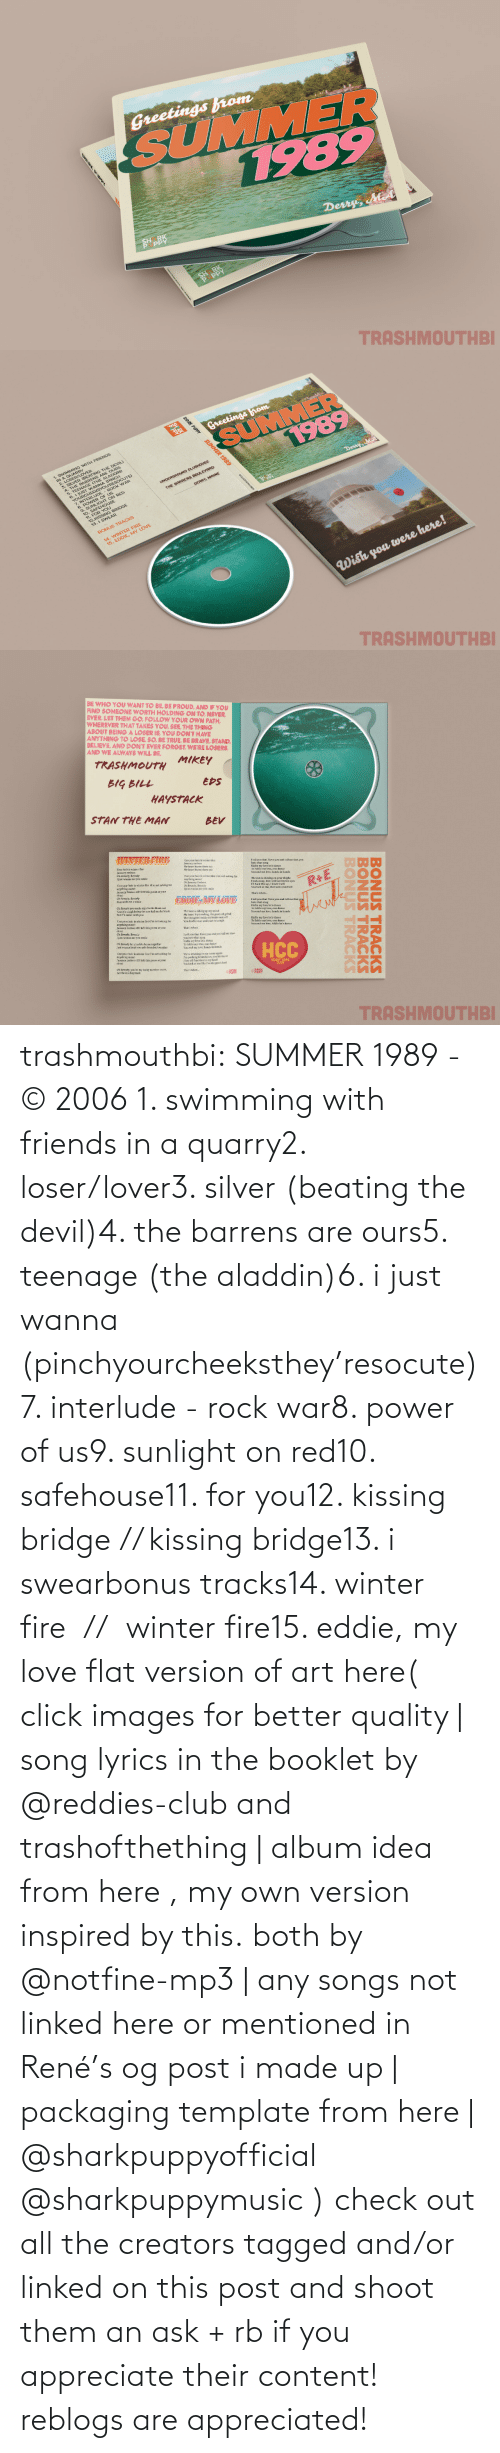 my love: trashmouthbi: SUMMER 1989 - © 2006 1. swimming with friends in a quarry2. loser/lover3. silver (beating the devil)4. the barrens are ours5. teenage (the aladdin)6. i just wanna (pinchyourcheeksthey'resocute)7. interlude - rock war8. power of us9. sunlight on red10. safehouse11. for you12. kissing bridge // kissing bridge13. i swearbonus tracks14. winter fire  //  winter fire15. eddie, my love flat version of art here( click images for better quality | song lyrics in the booklet by @reddies-club​ and trashofthething | album idea from here , my own version inspired by this. both by @notfine-mp3​ | any songs not linked here or mentioned in René's og post i made up | packaging template from here | @sharkpuppyofficial​ @sharkpuppymusic​ ) check out all the creators tagged and/or linked on this post and shoot them an ask + rb if you appreciate their content! reblogs are appreciated!